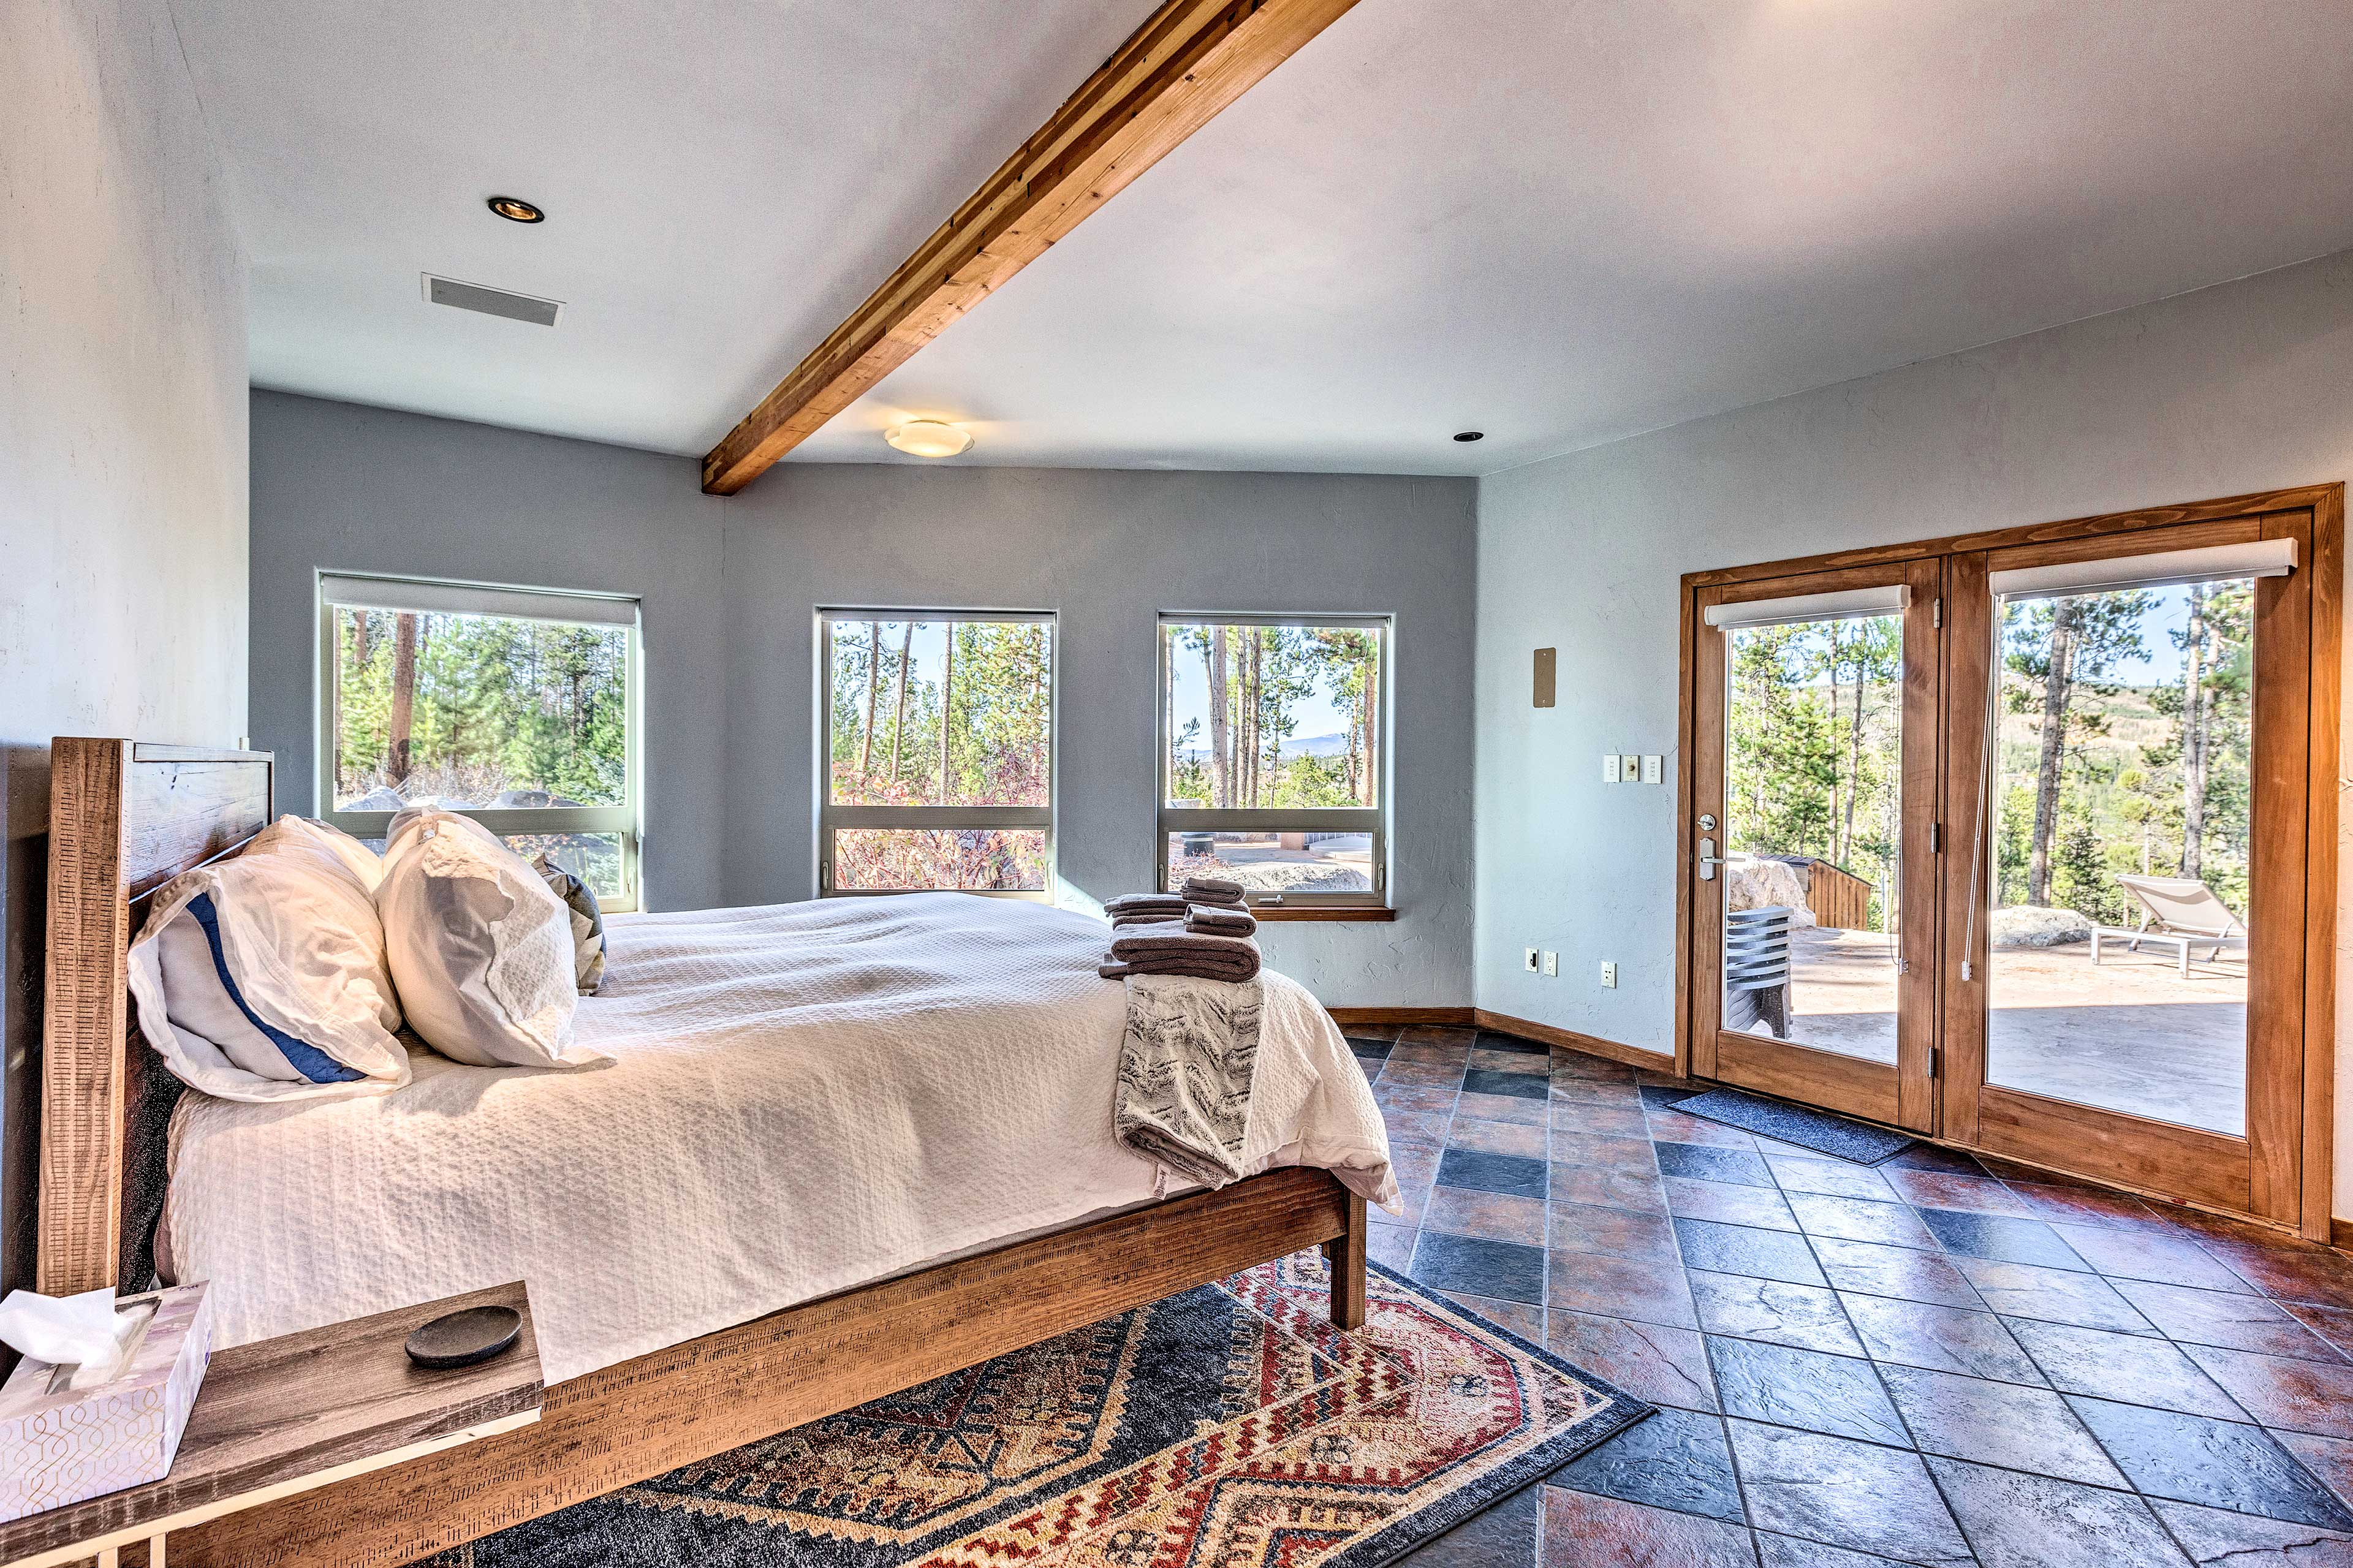 The spacious master bedroom boasts a king-sized bed.